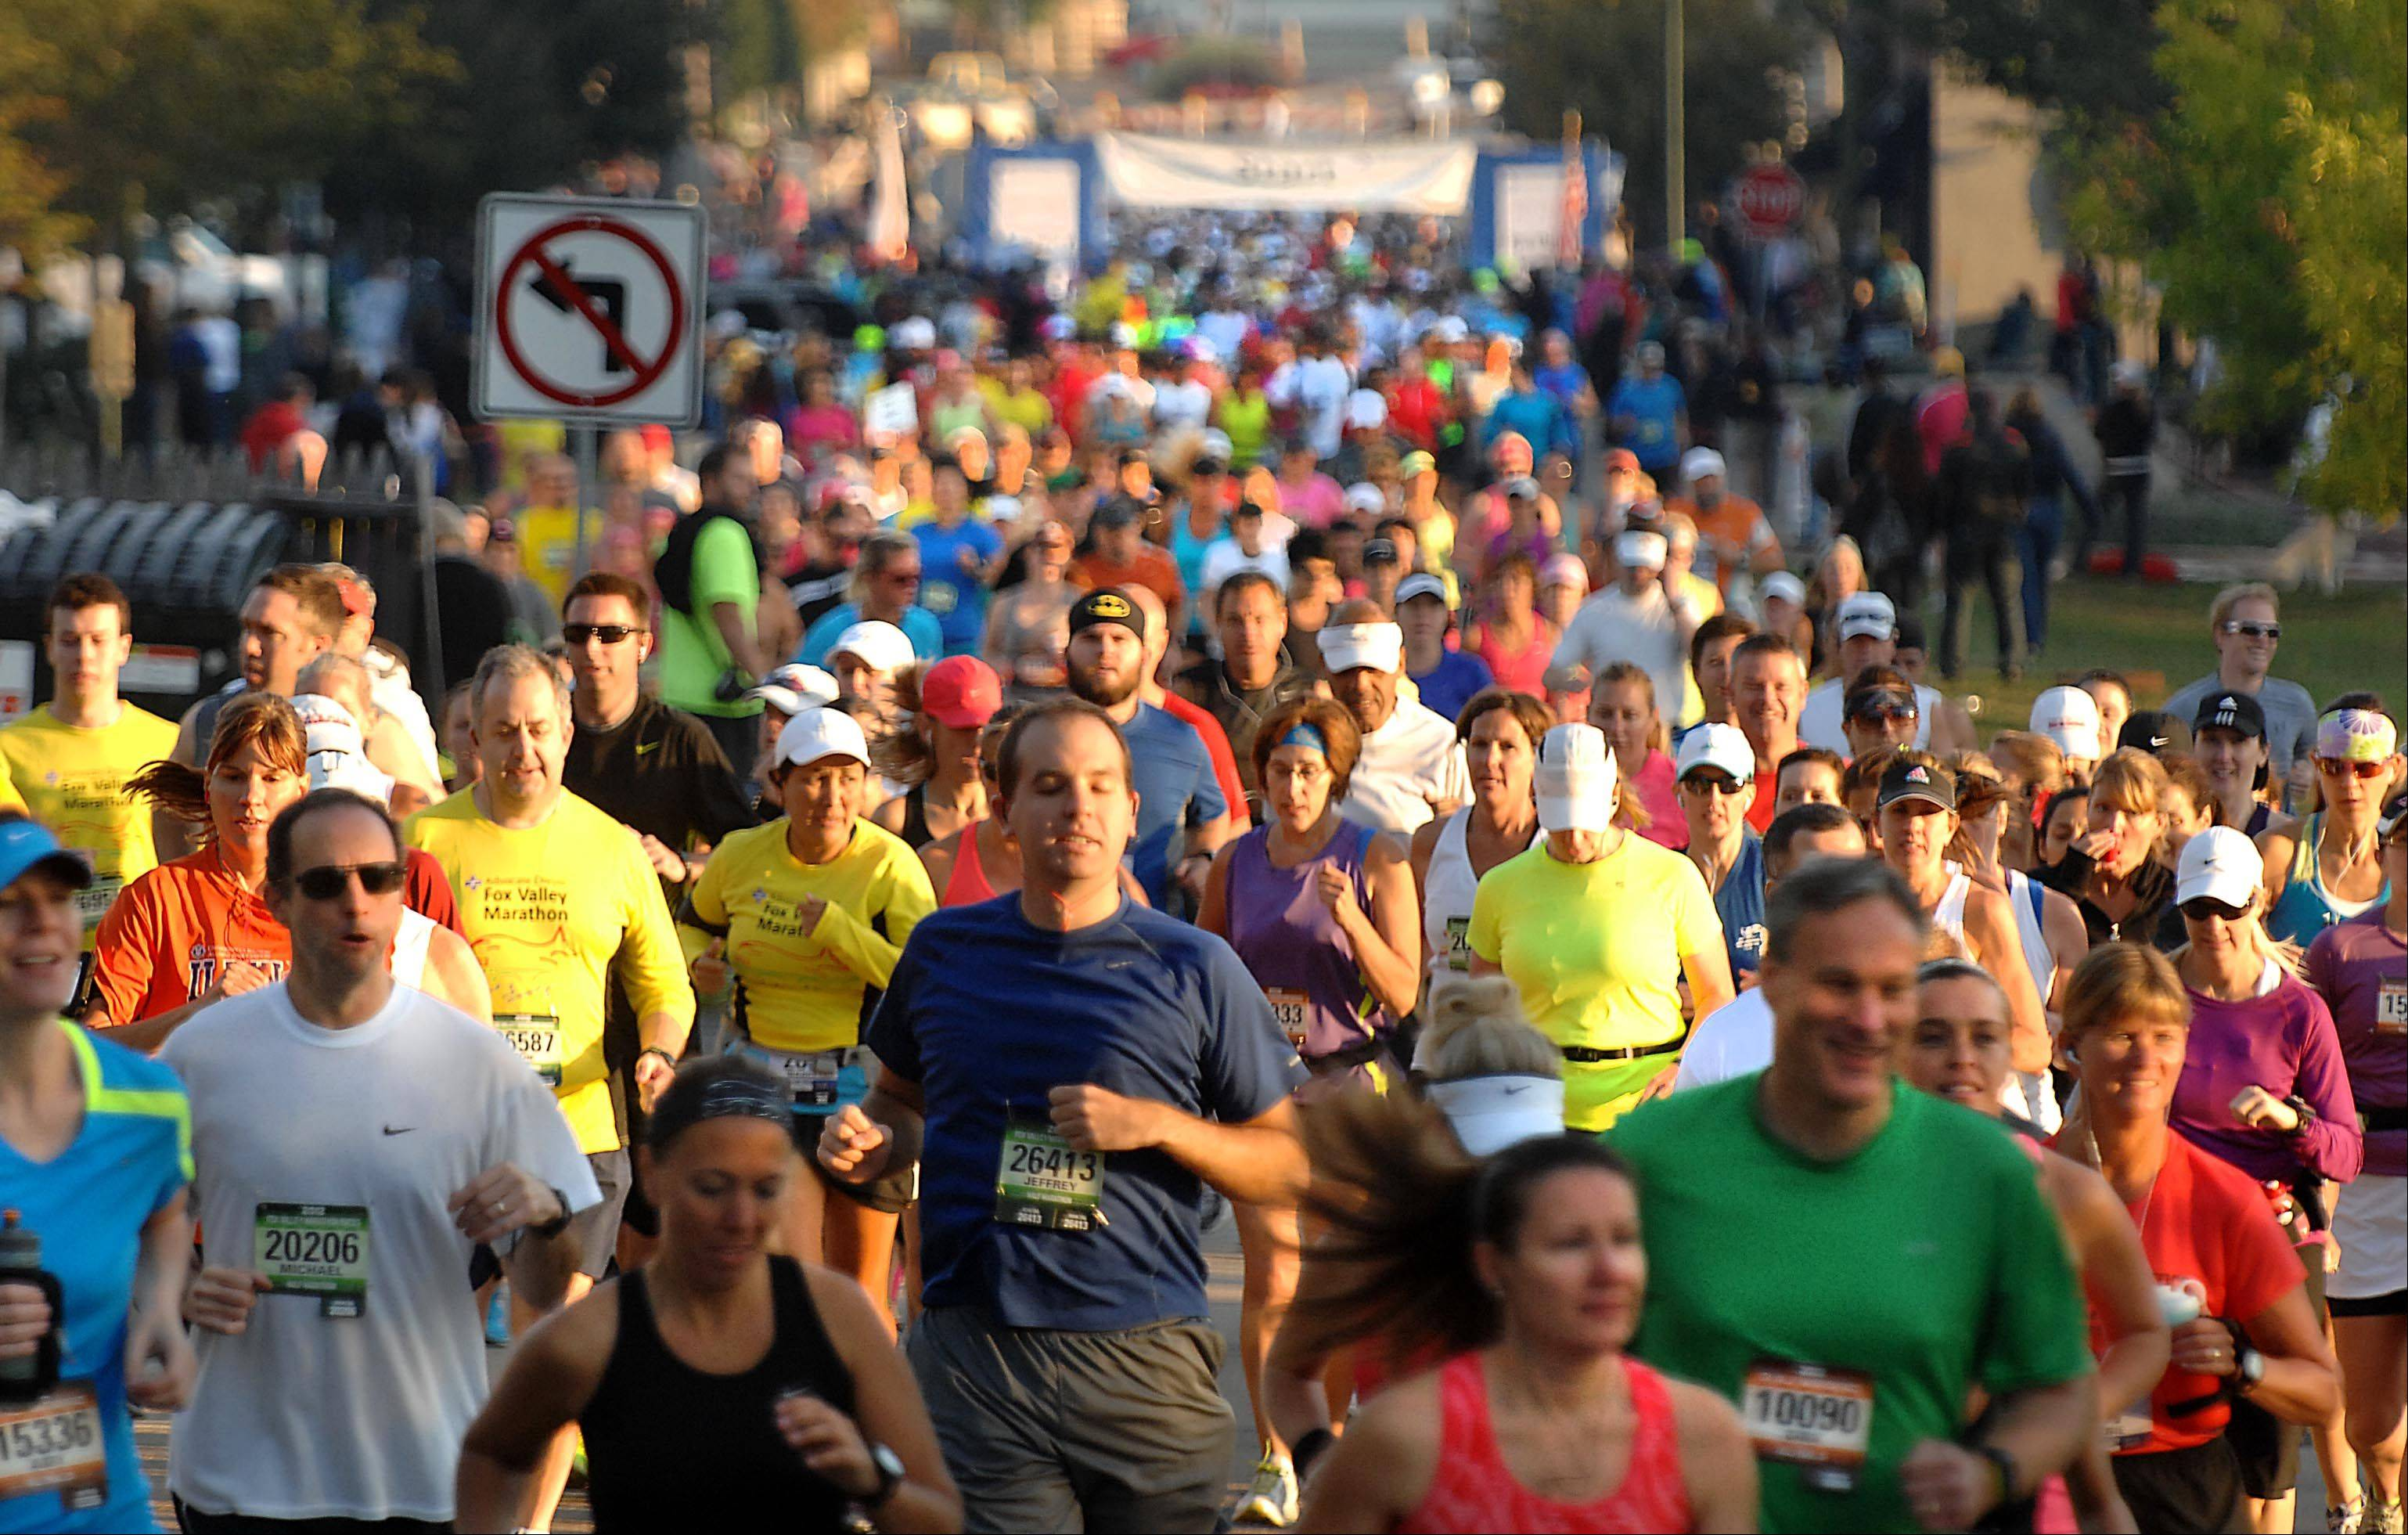 The Inaugural Naperville Marathon and Half Marathon on Nov. 10 will be joining the Fox Valley Marathon among suburban distance running events this year. Race directors lowered the price of the Naperville races to $105 and $75 respectively before registration begins at 6 a.m. Monday in response to feedback from runners concerned about the cost of the event.